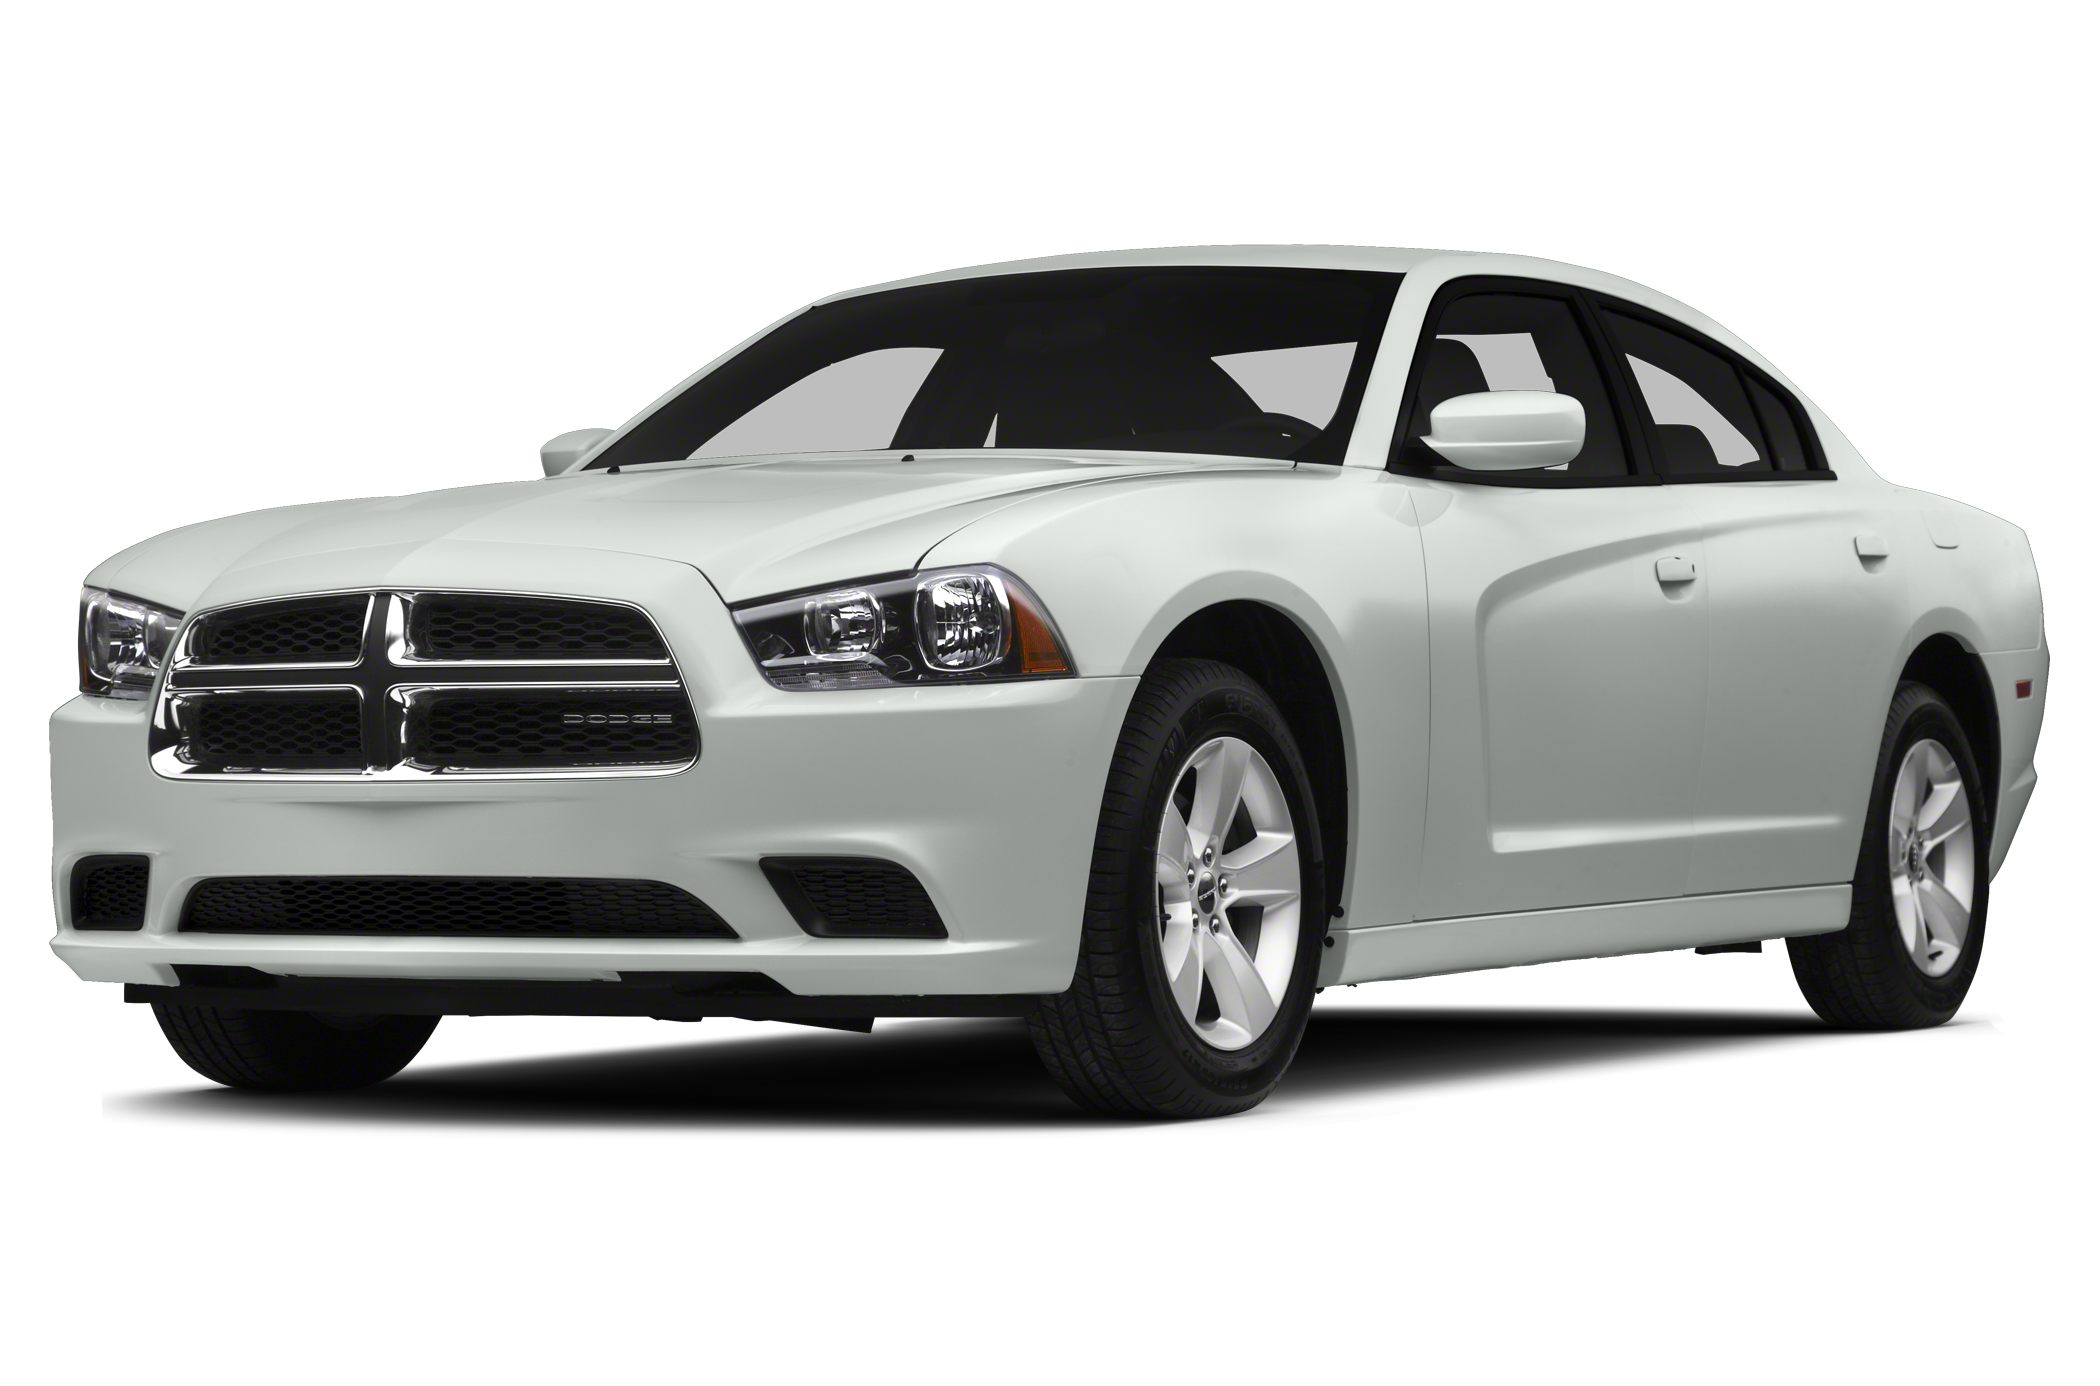 2014 Dodge Charger SE Sedan for sale in Ankeny for $21,900 with 23,892 miles